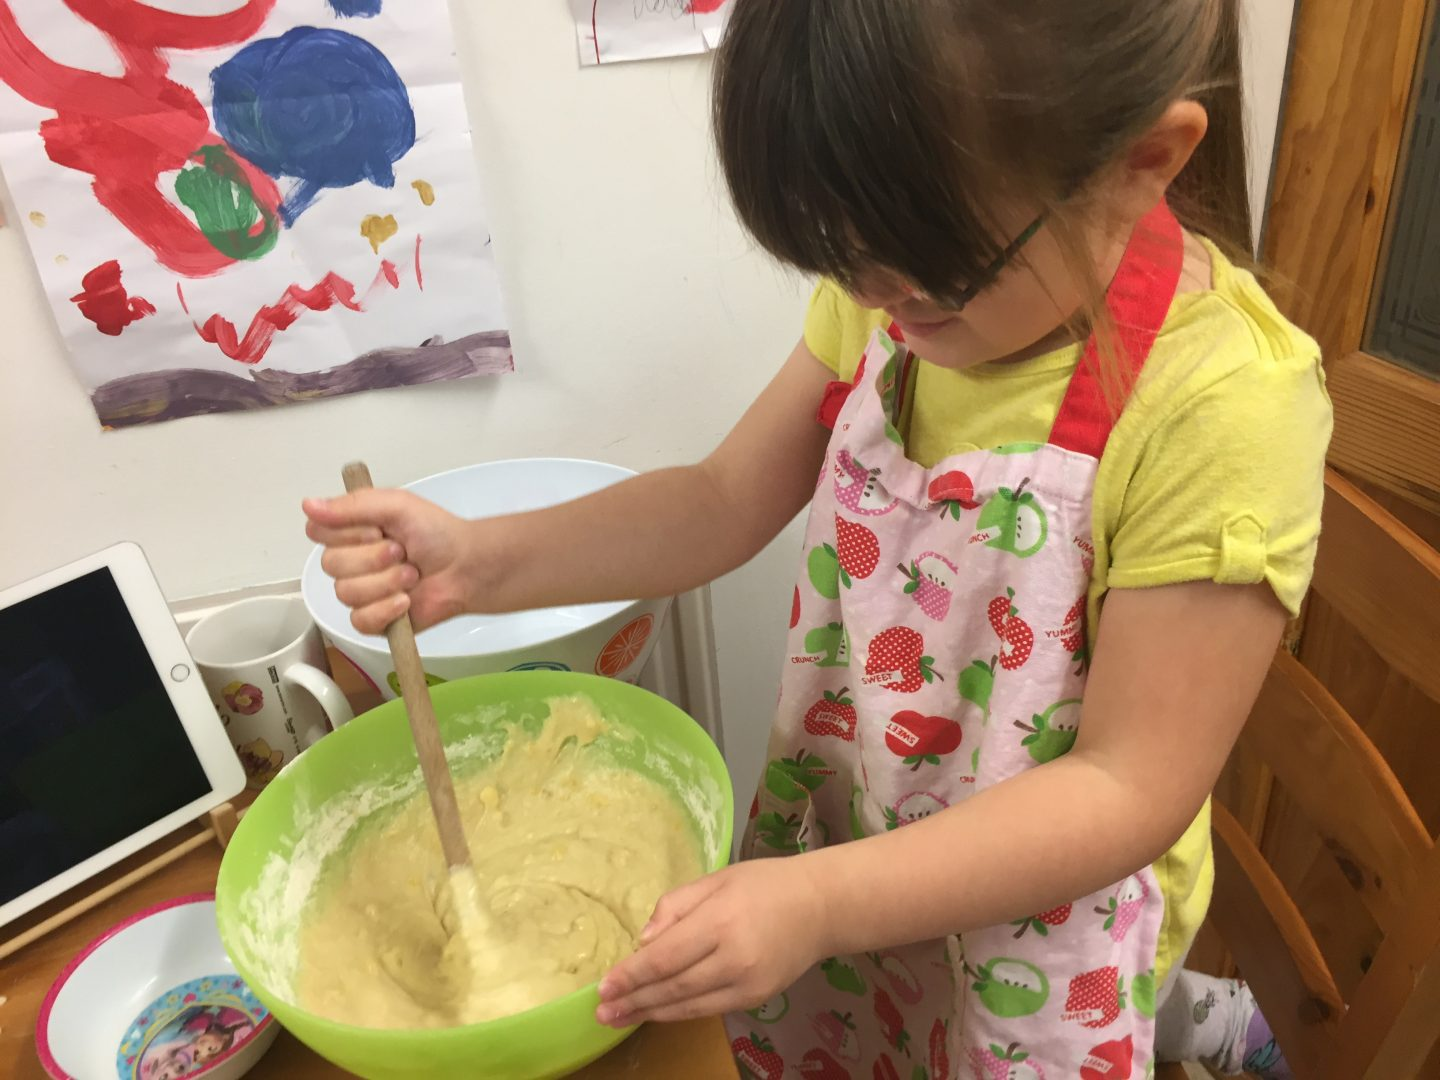 How To Make Baking And Cooking Fun For Kids